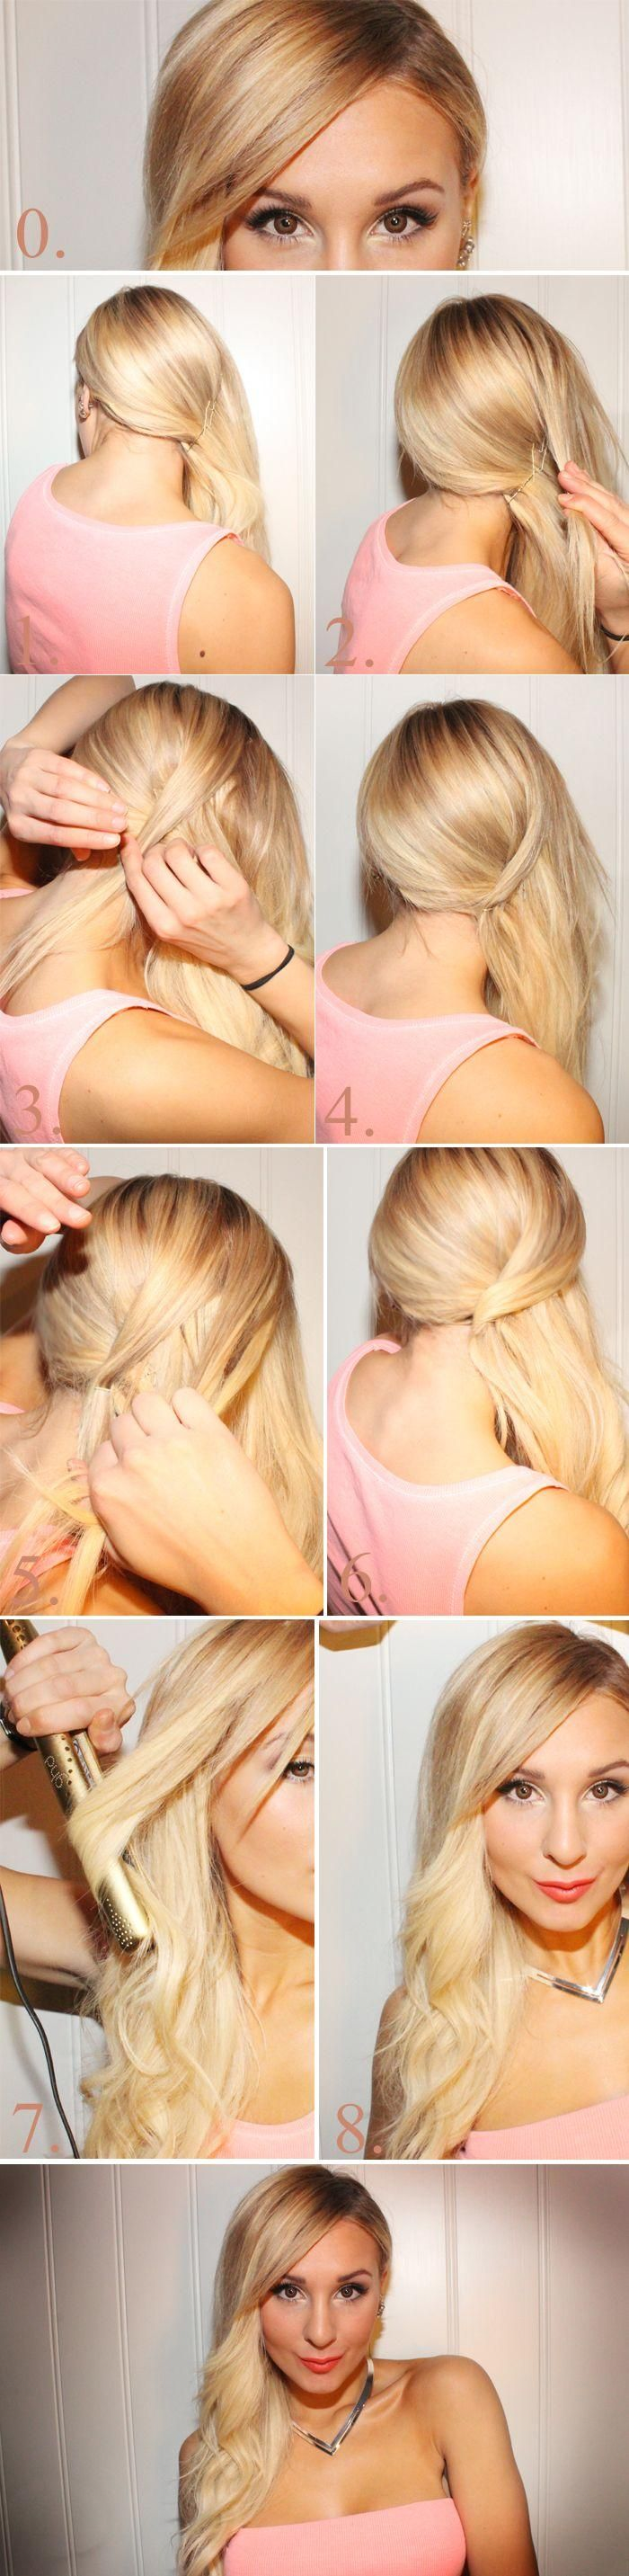 Get the look – Glamorous side curls